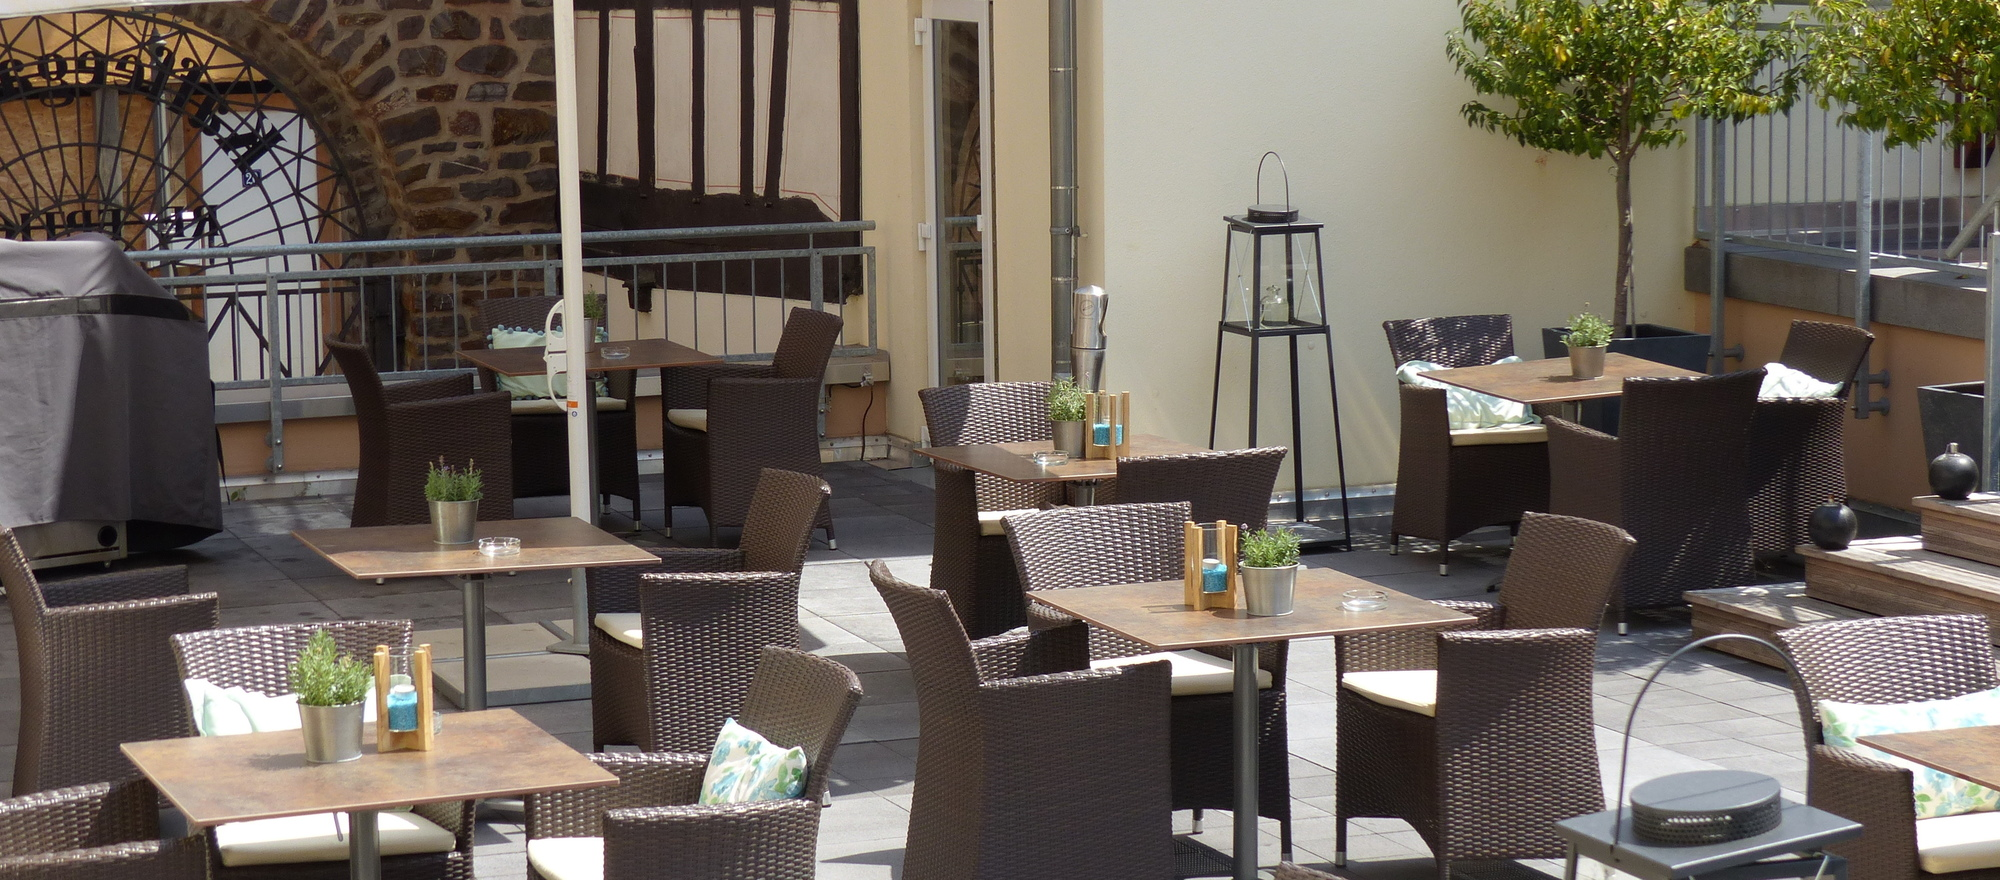 The summer terrace in restaurant in the Ringhotel Nassau-Oranien in Limburg / Hadamar, Hotel in Westerwald